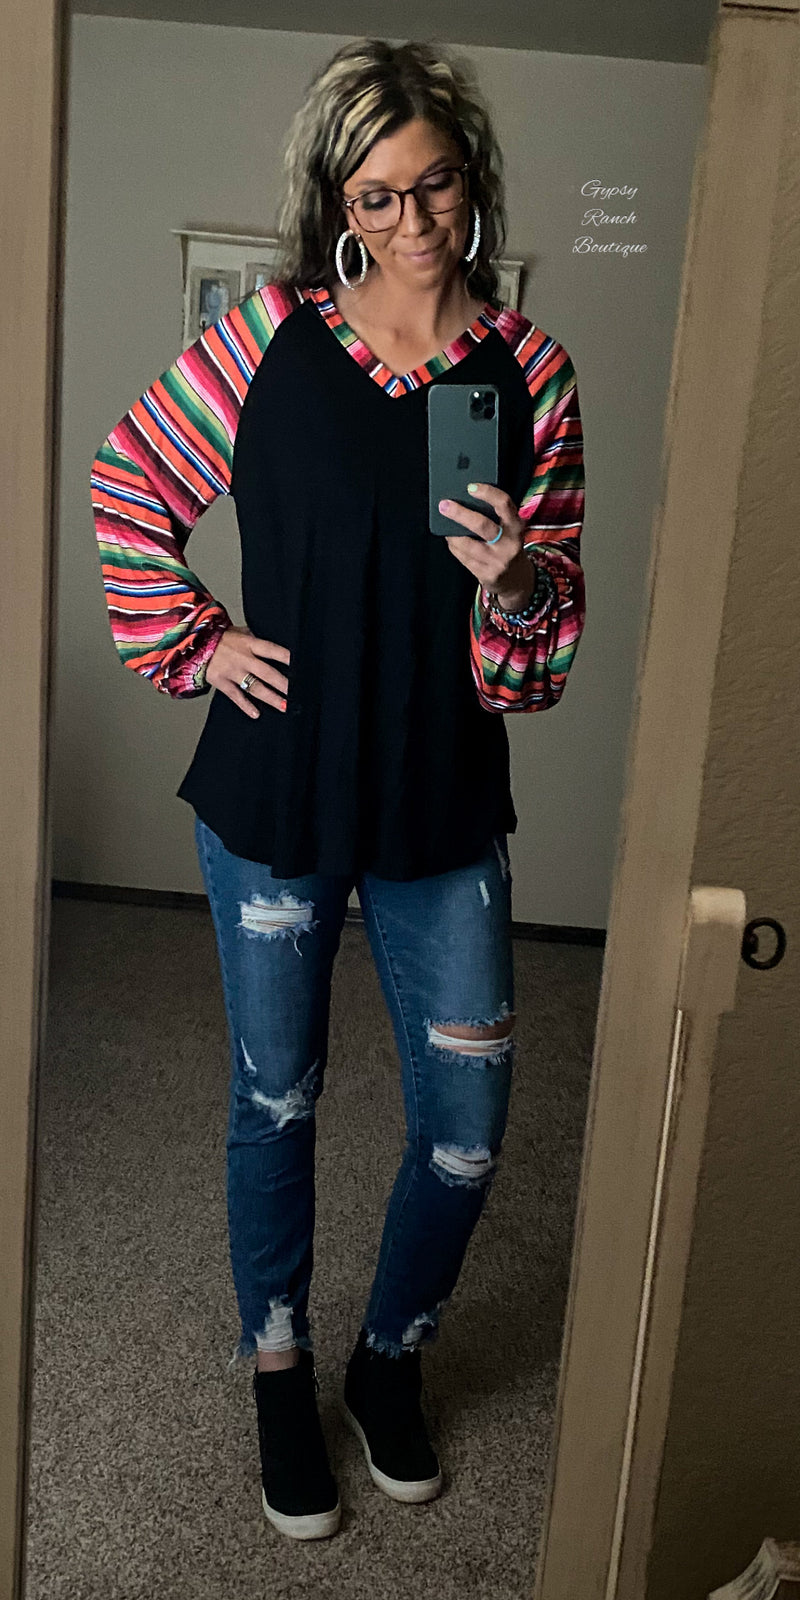 Lancaster Serape Top - Also in Plus Size